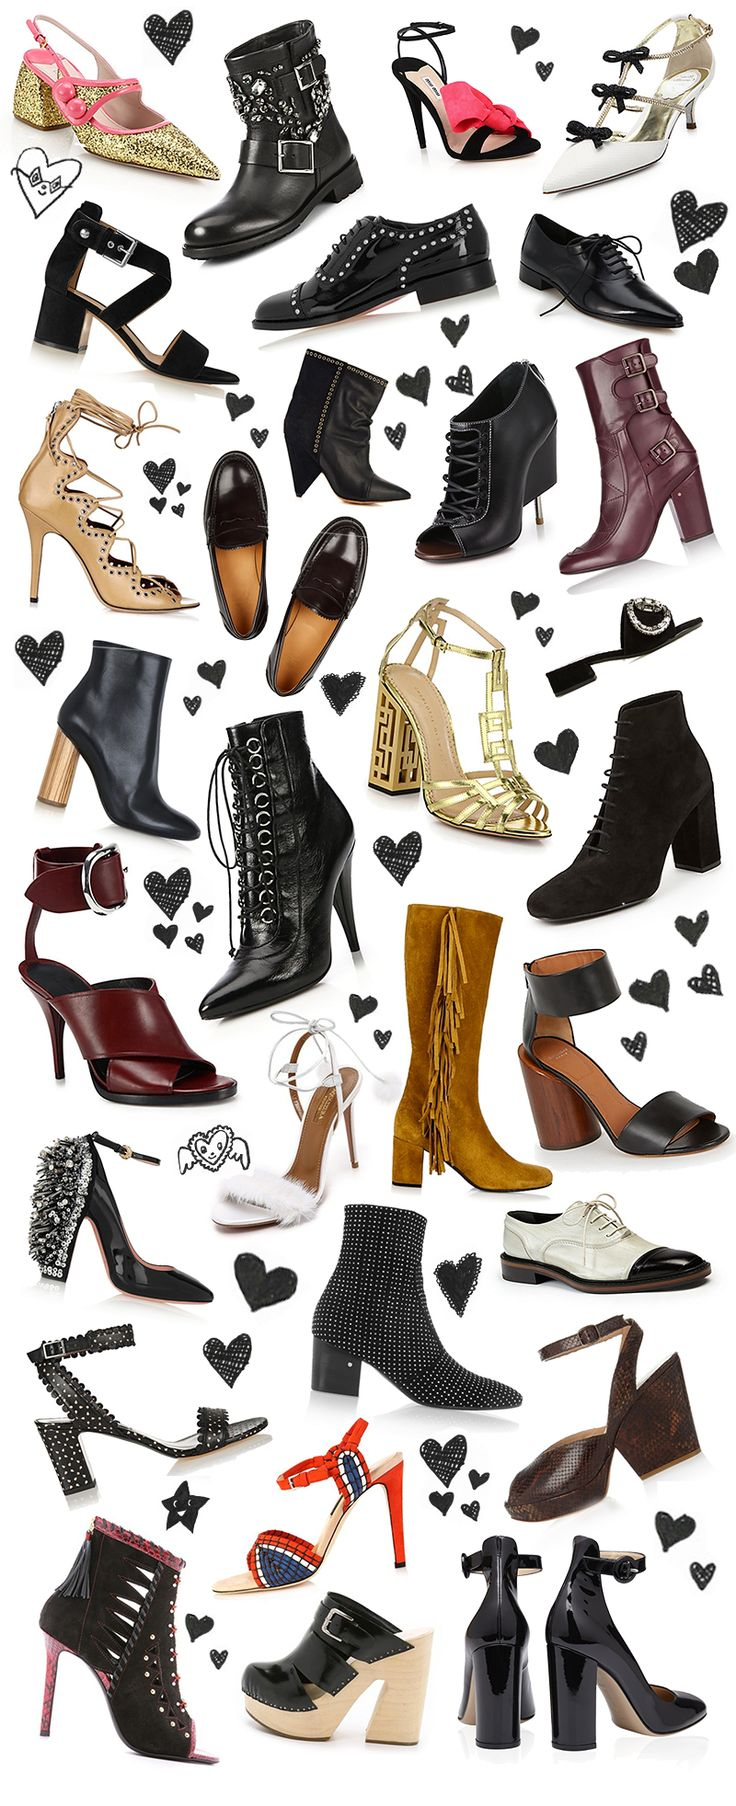 Uh oh, it's the Black Friday shoe sale!